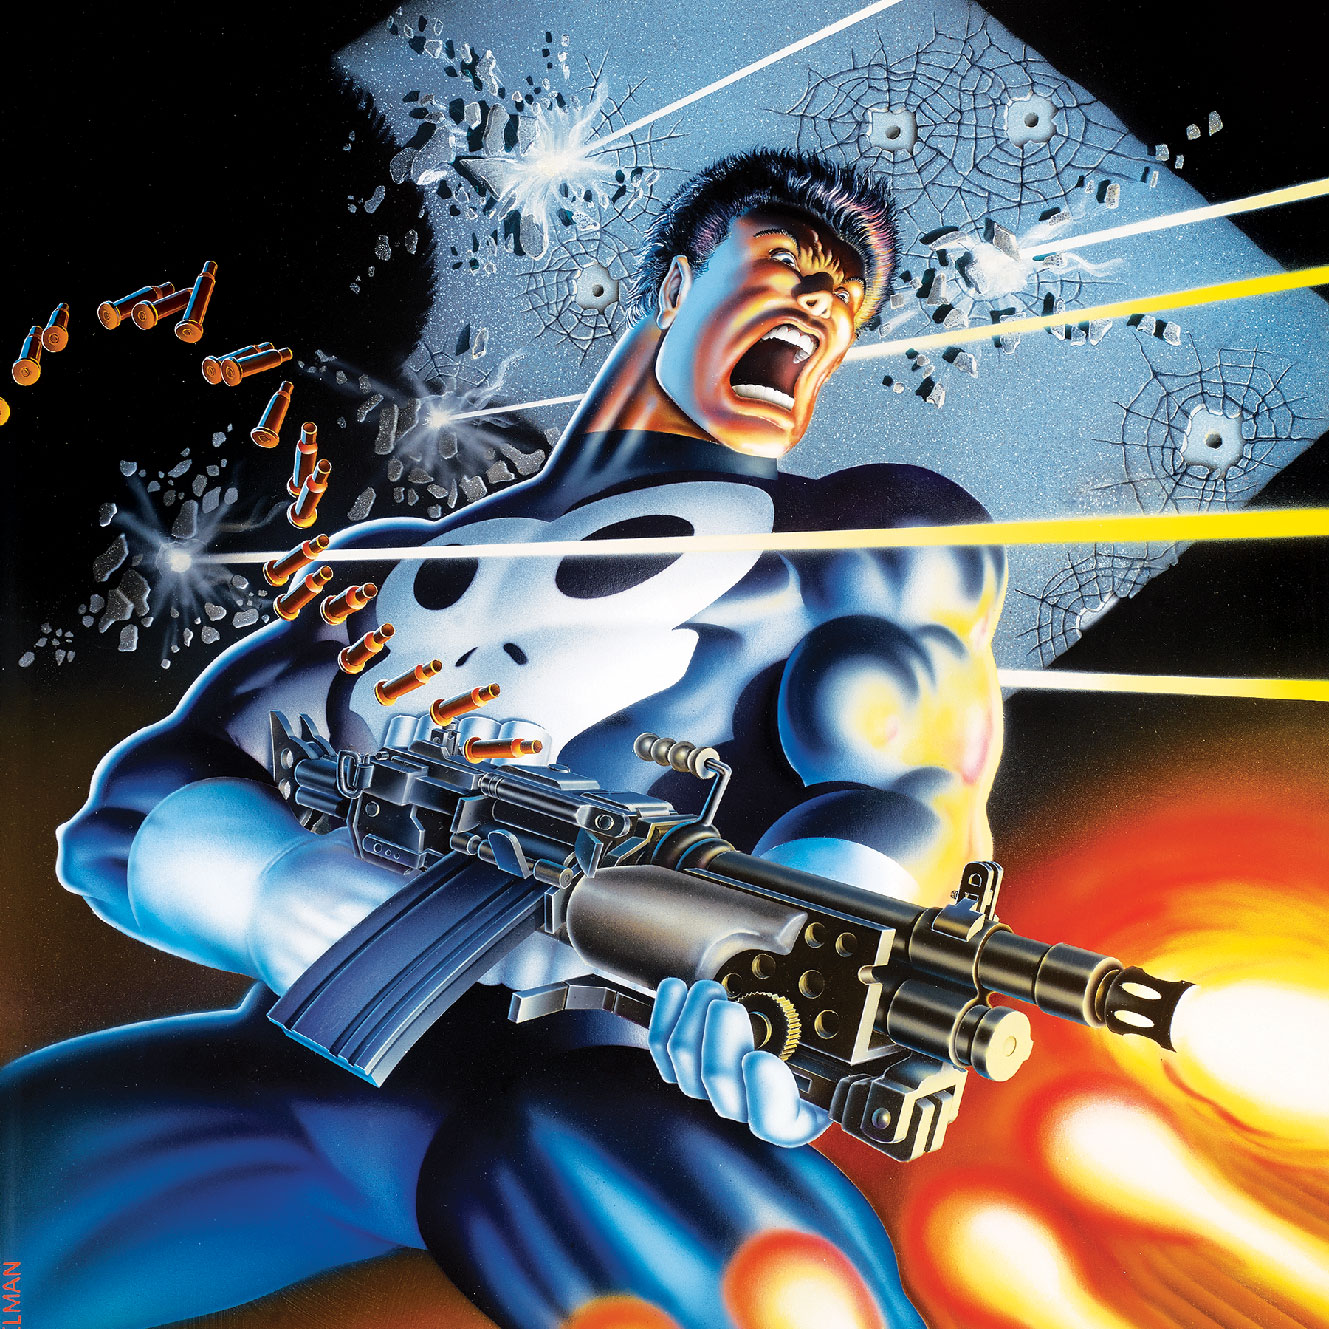 Raw Fury: The Art of Mike Zeck - Apr 5 – Aug 10, 2014